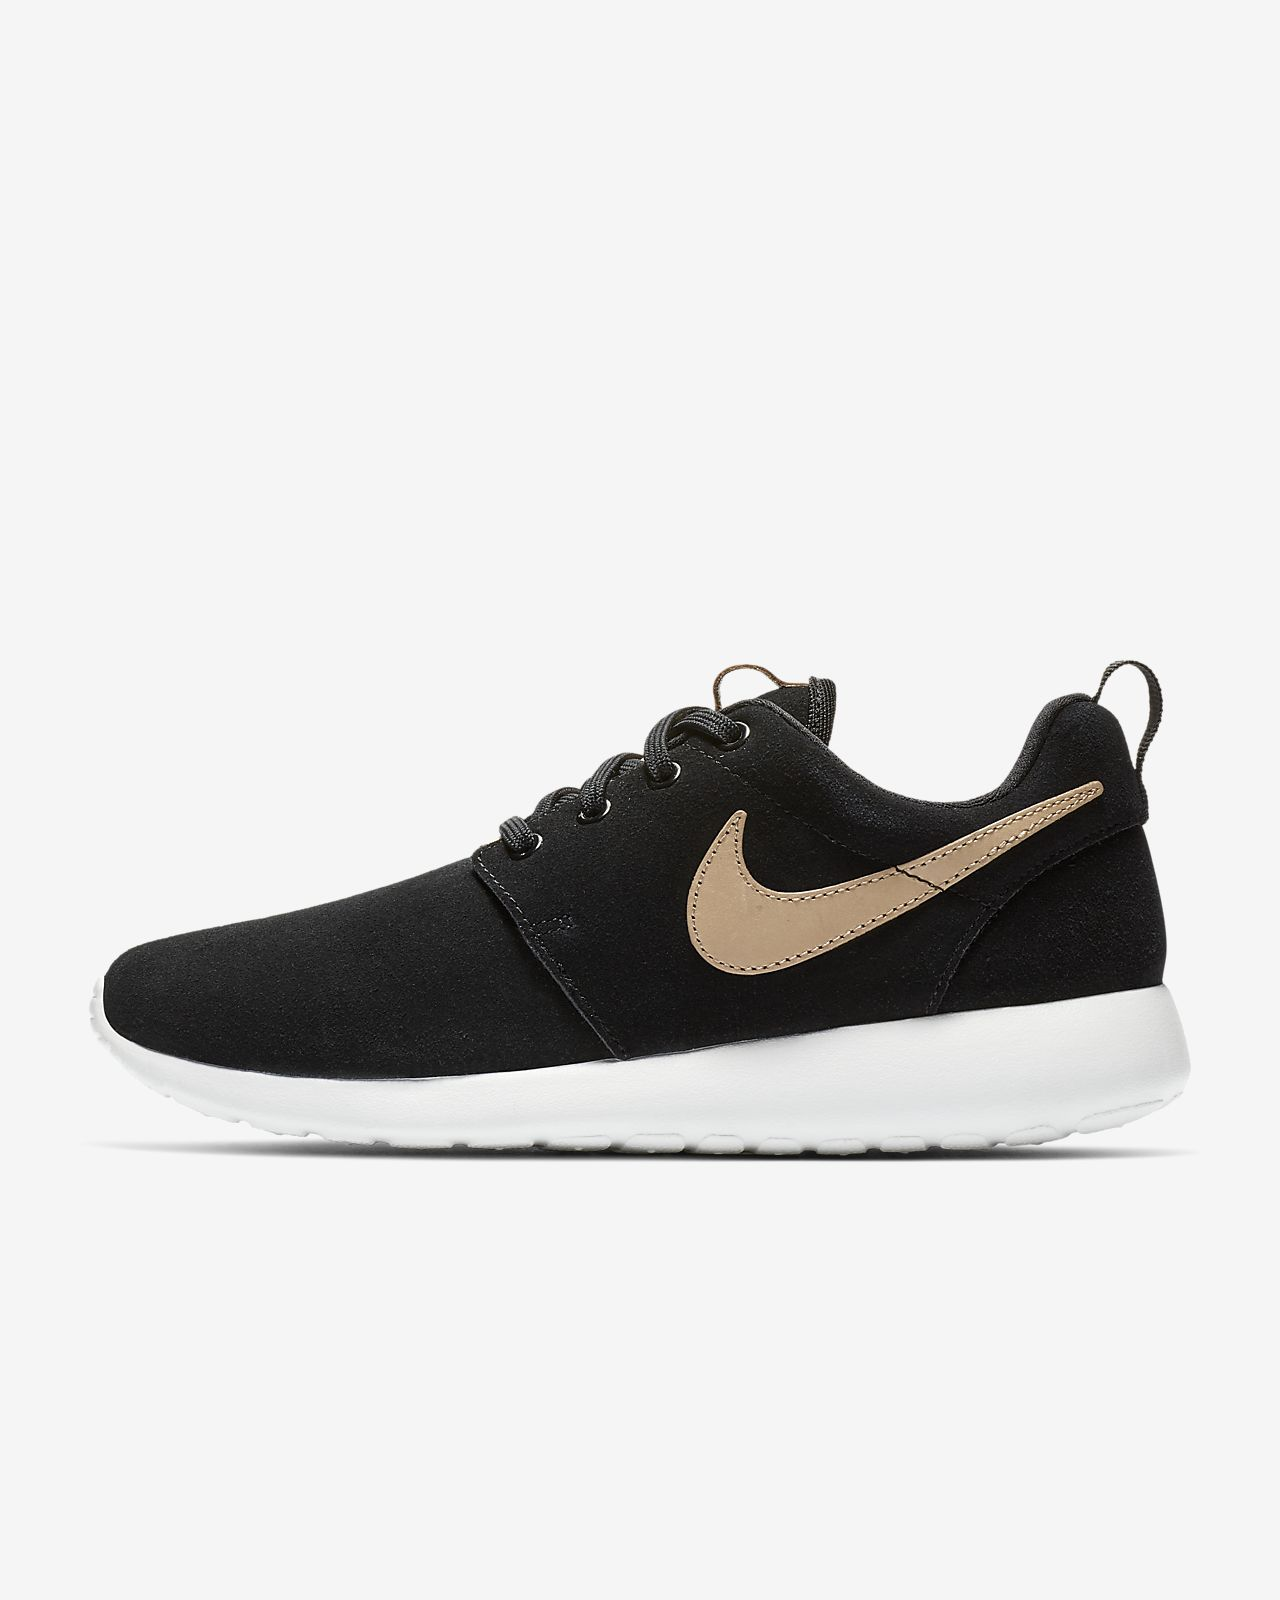 huge discount 49999 946a3 ... Nike Roshe One Premium Women s Shoe